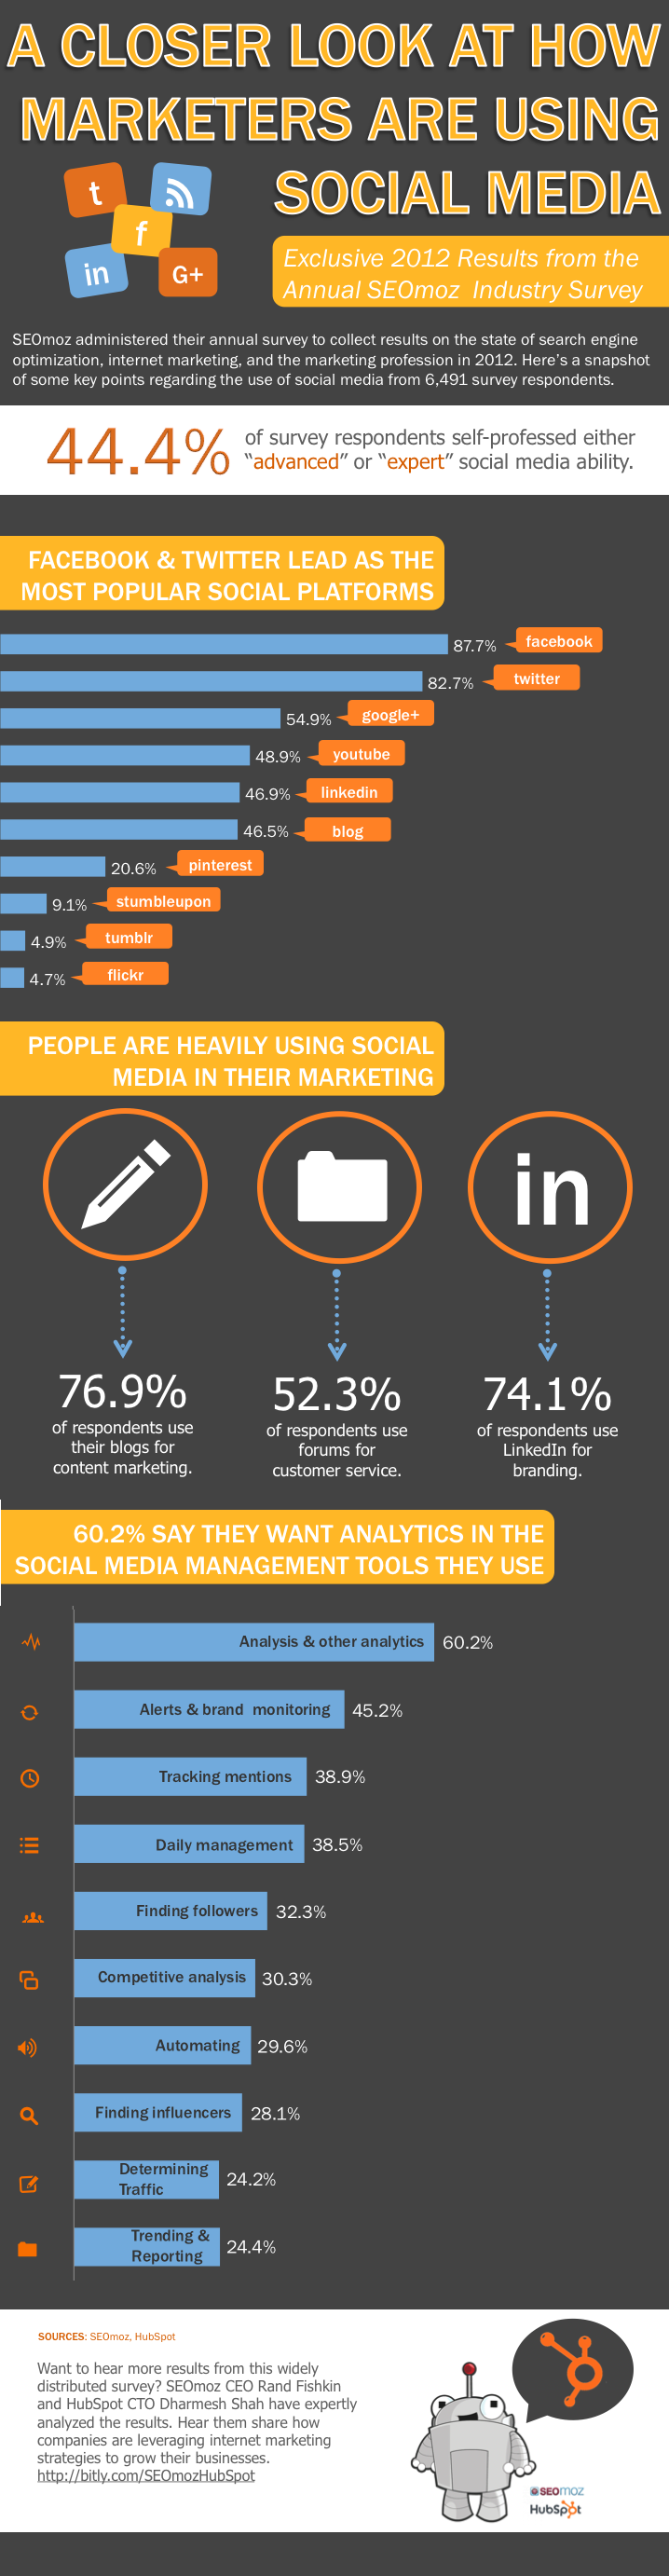 A Closer Look at How Marketers Are Using Social Media [Infographic]